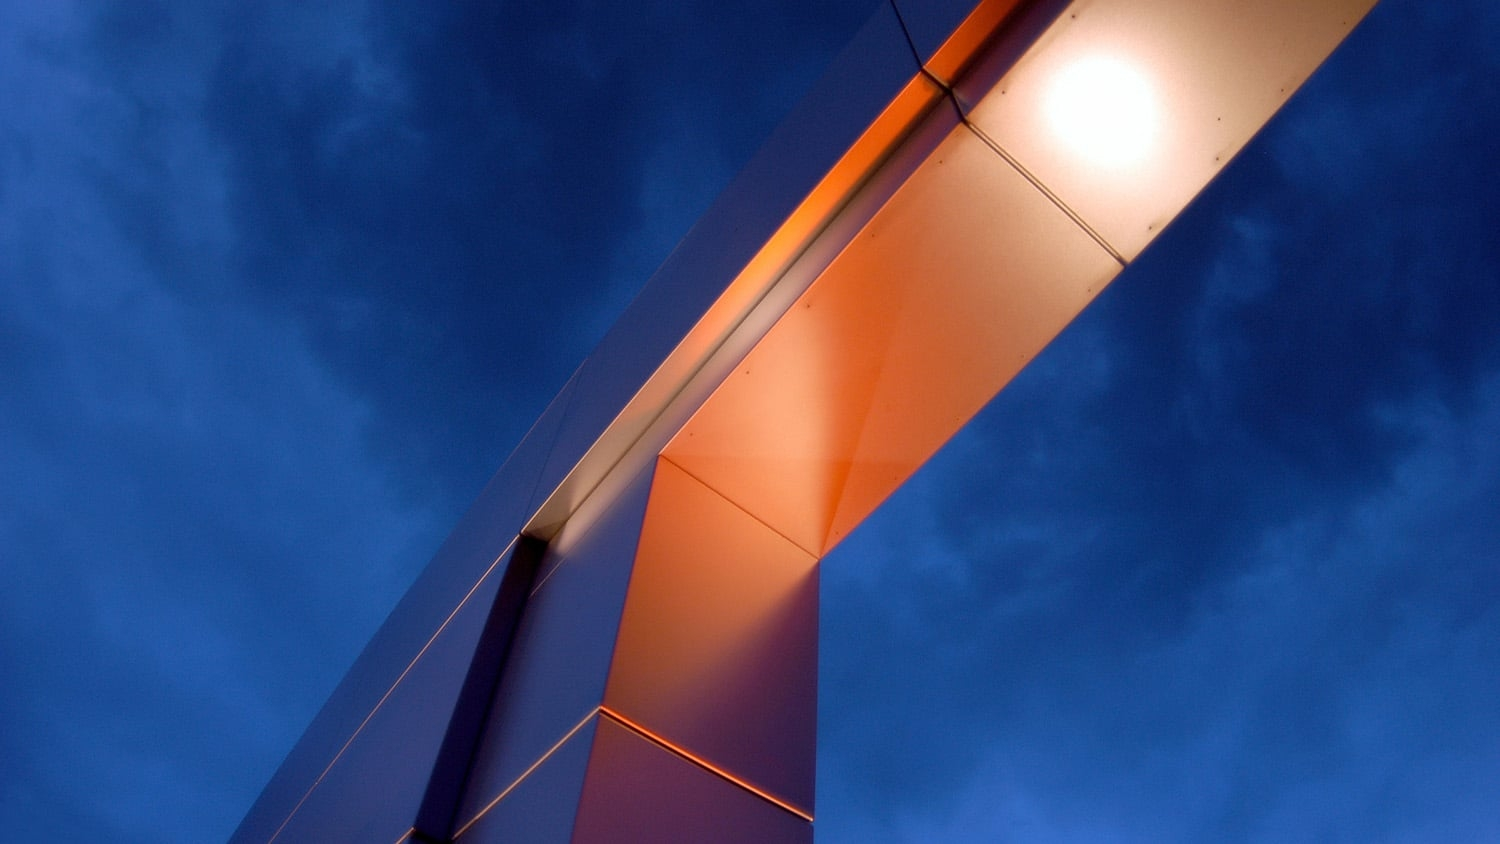 The campus gateway from underneath, against a blue sky